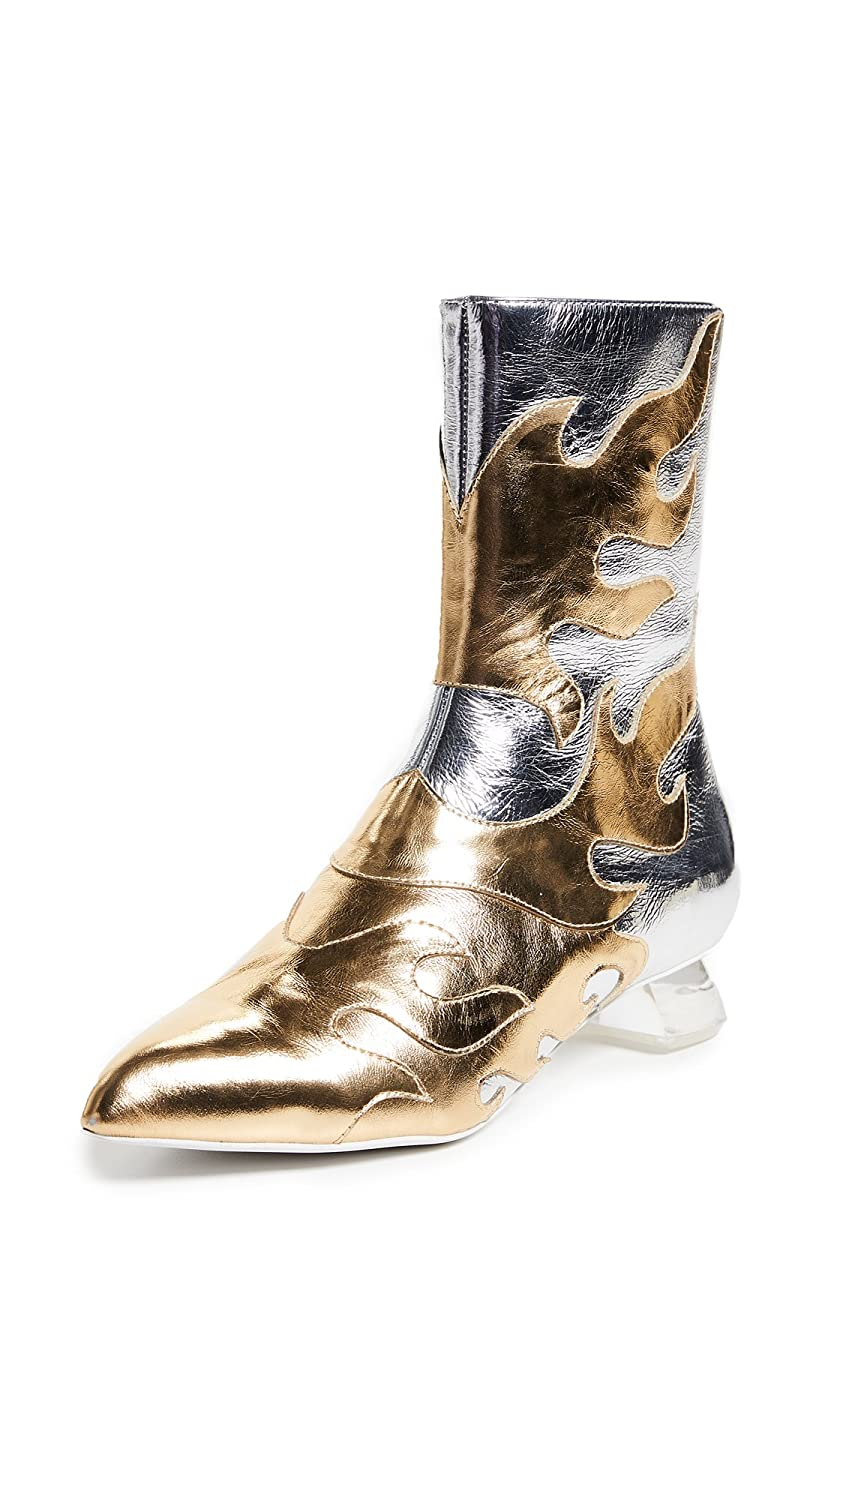 Jeffrey Campbell Women's Skyrocket Flame Ankle Boots B07DL98D8G 6.5 B(M) US|Silver/Gold